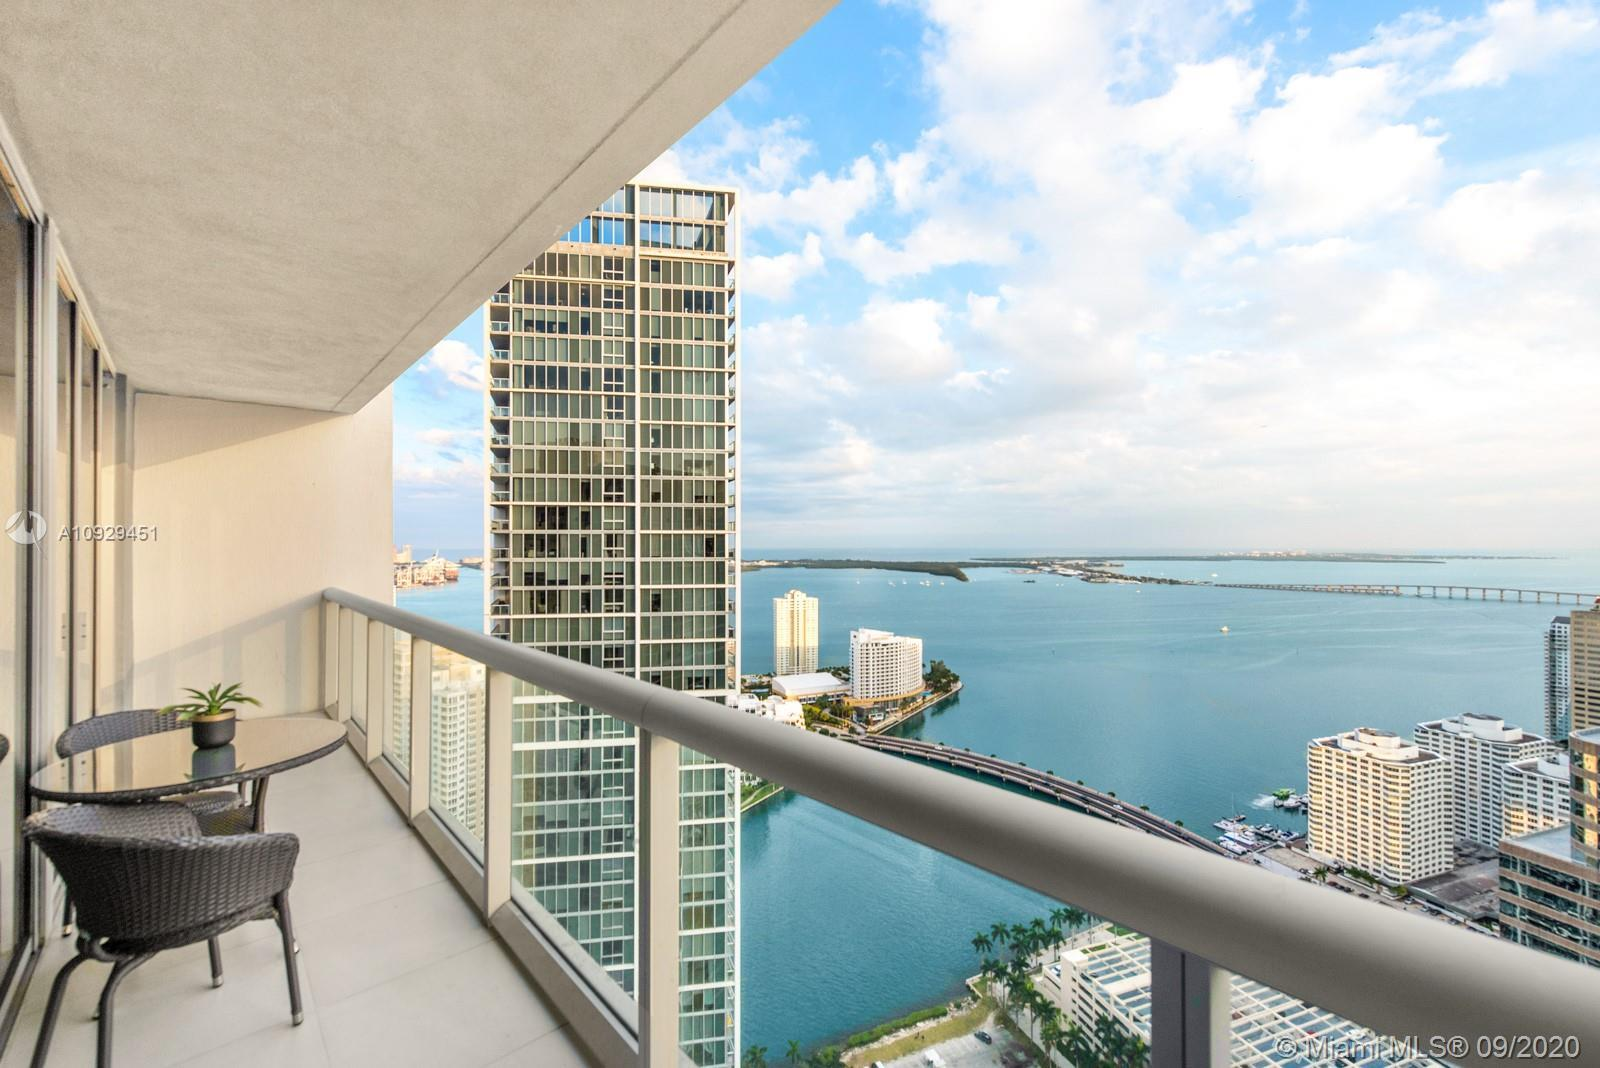 Luxury 2-bedroom with the most fantastic views of Biscayne Bay and the Brickell Skyline. Turnkey fur